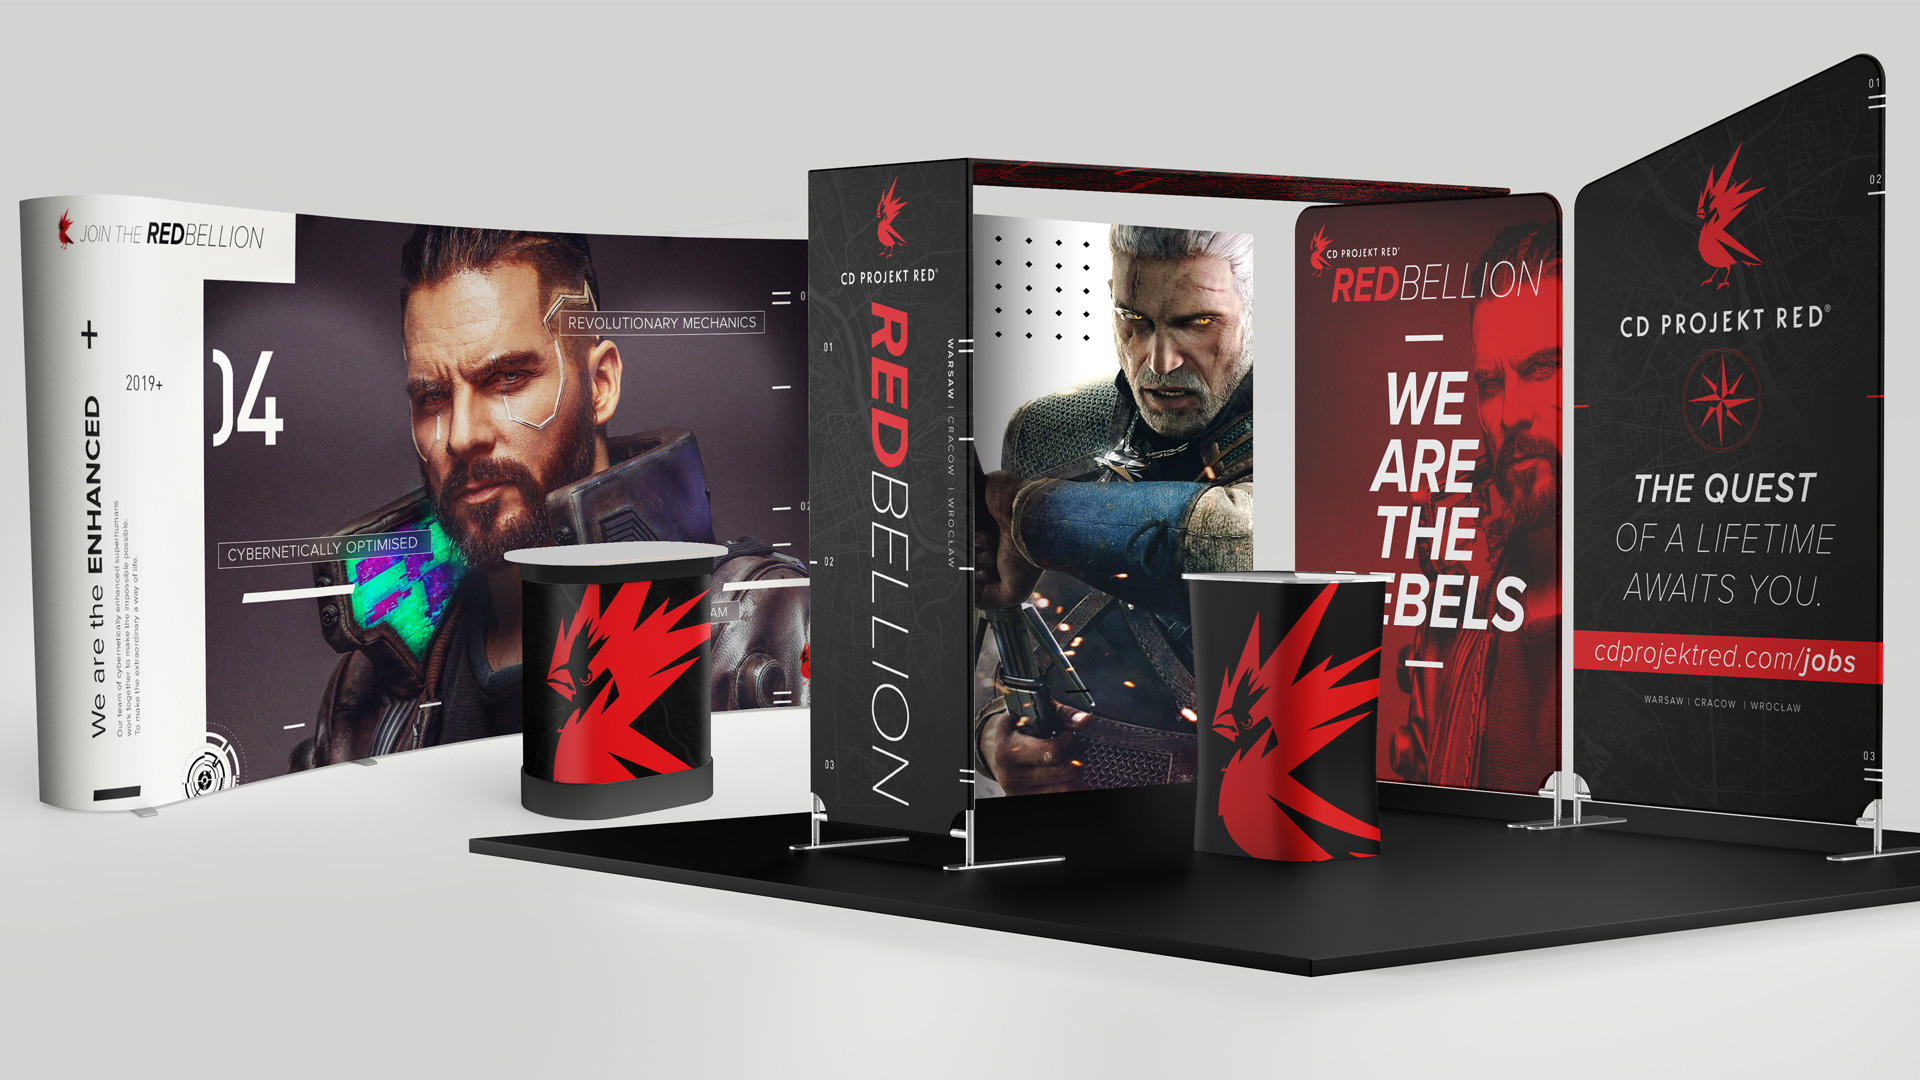 CD Projekt Red trade show booth concept